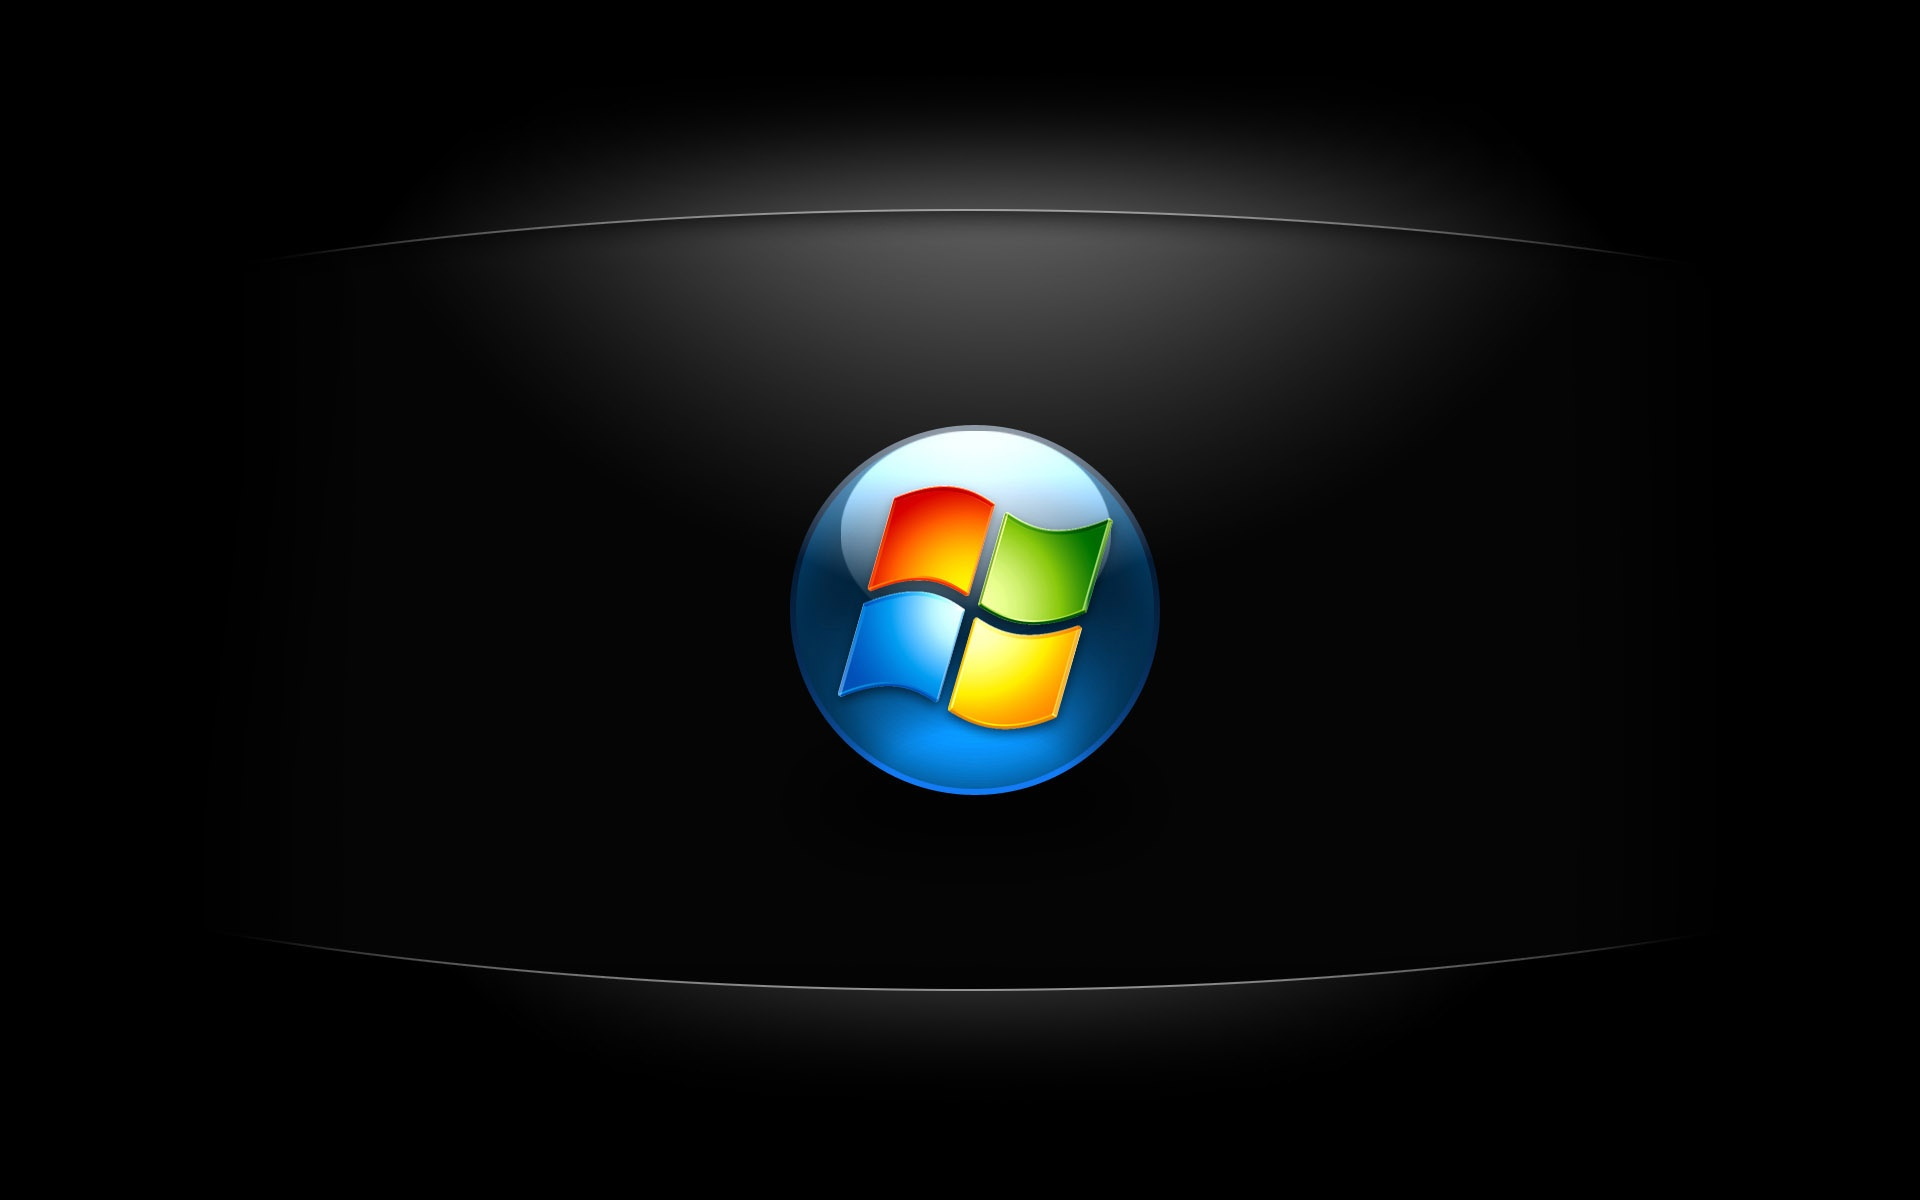 Dark Windows 7 HD Wallpaper